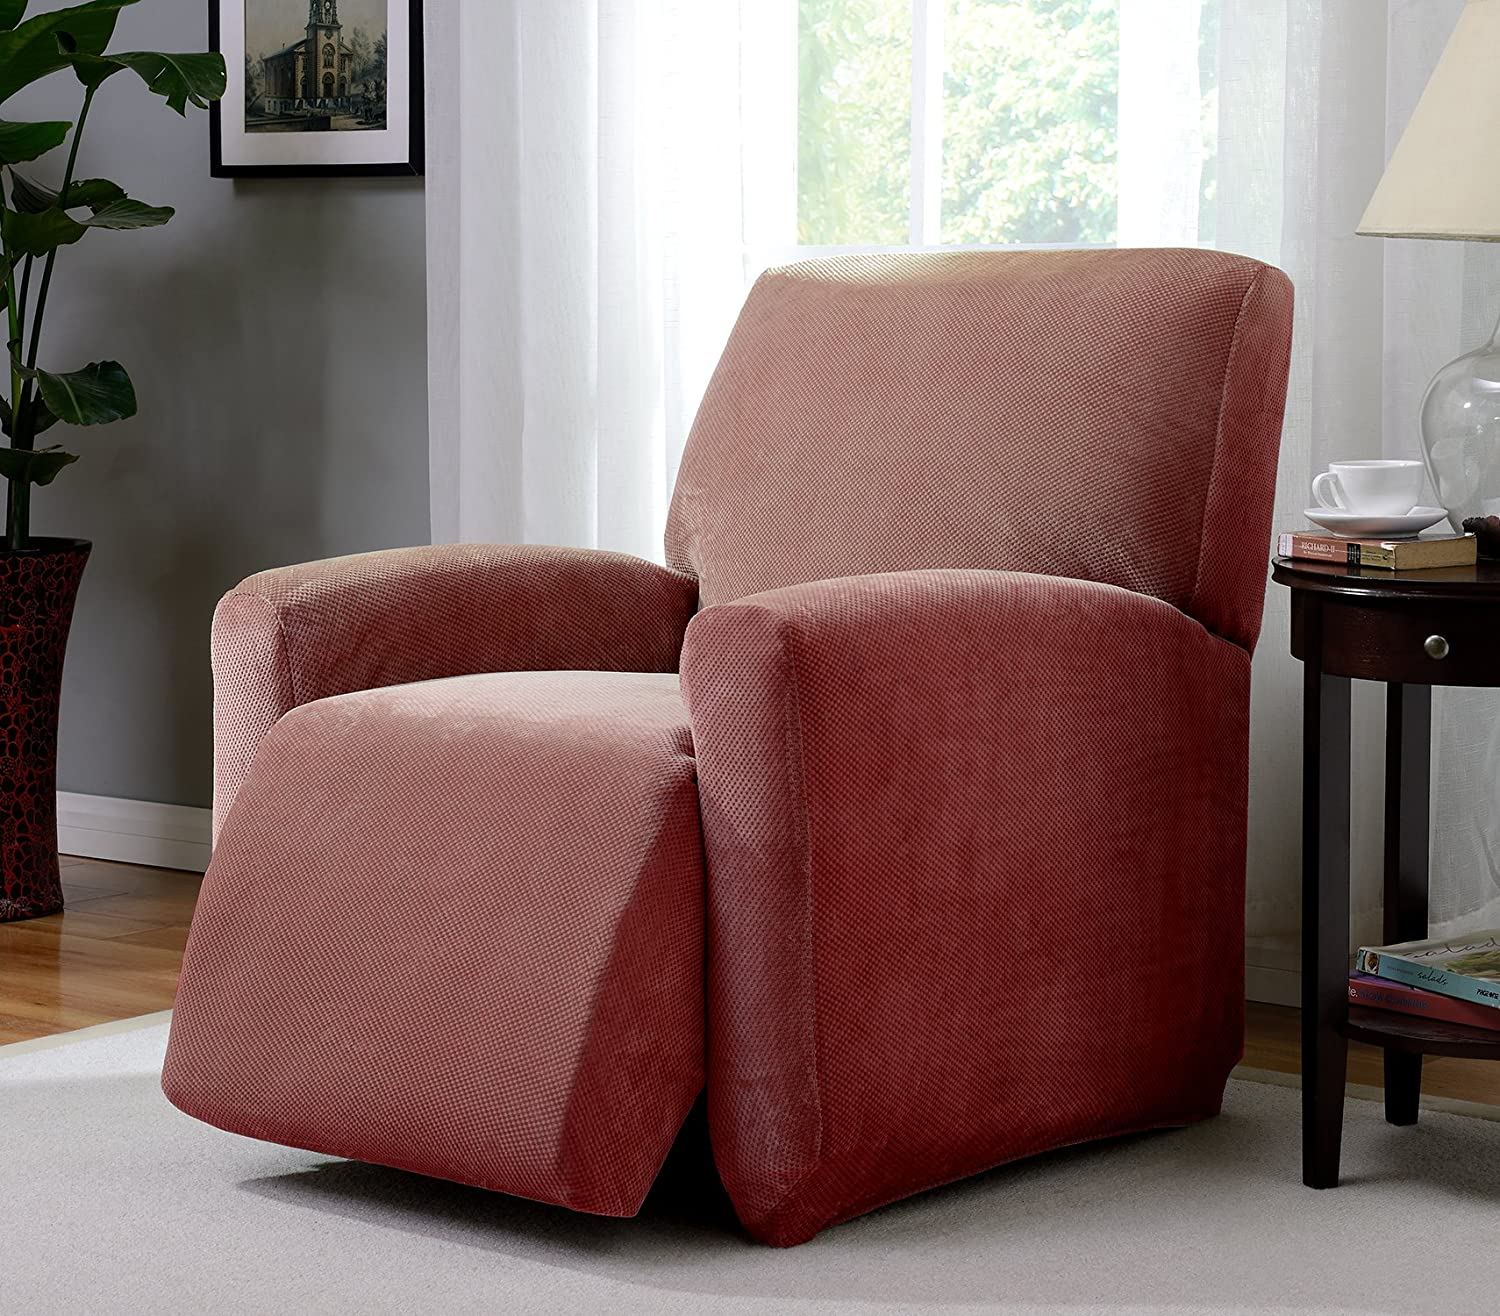 Madison Slipcover Stretch Pique Large Recliner Paprika,